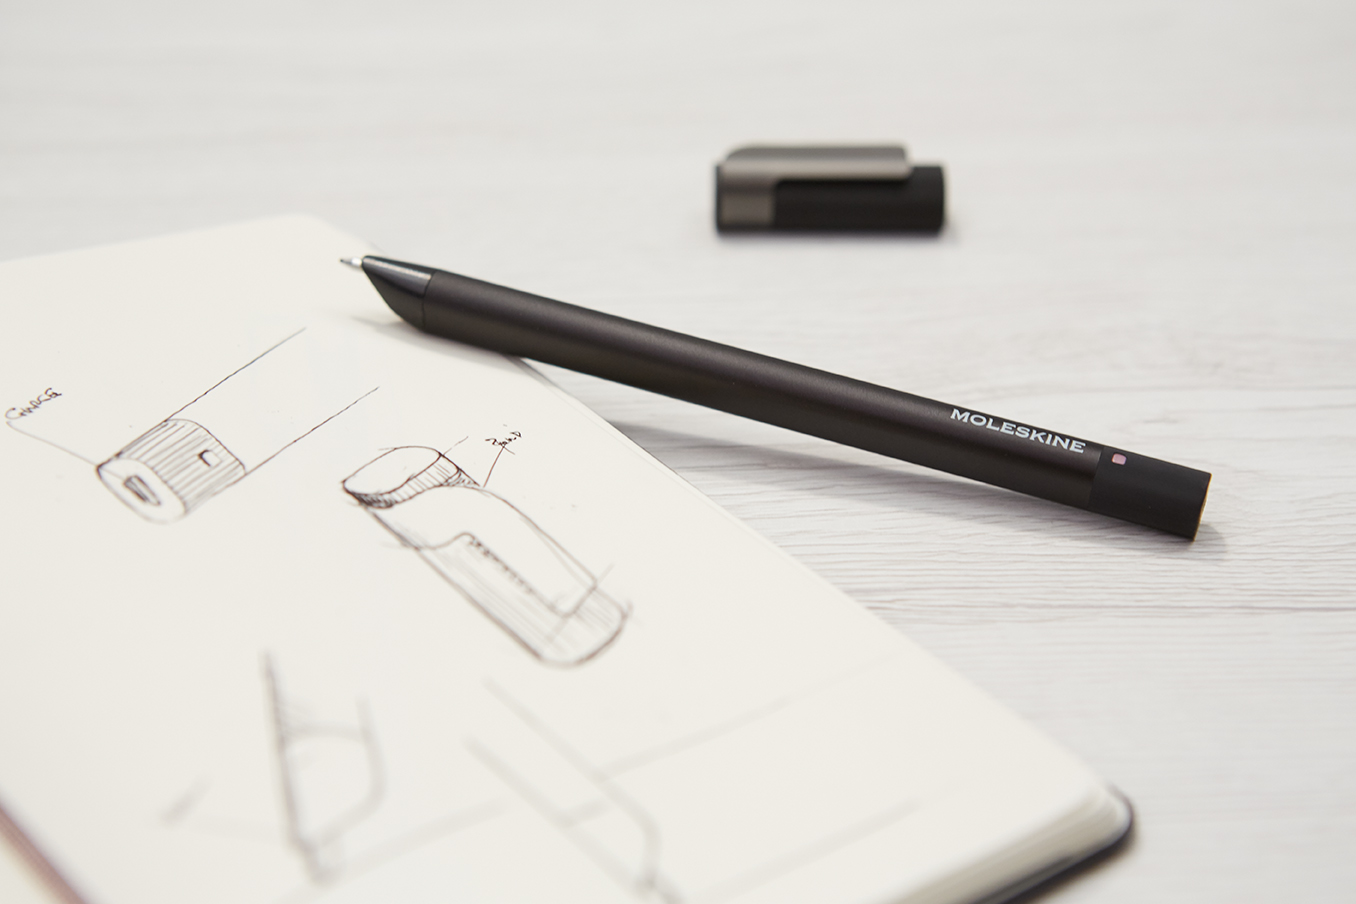 Moleskines latest smart pen saves your writing to download later